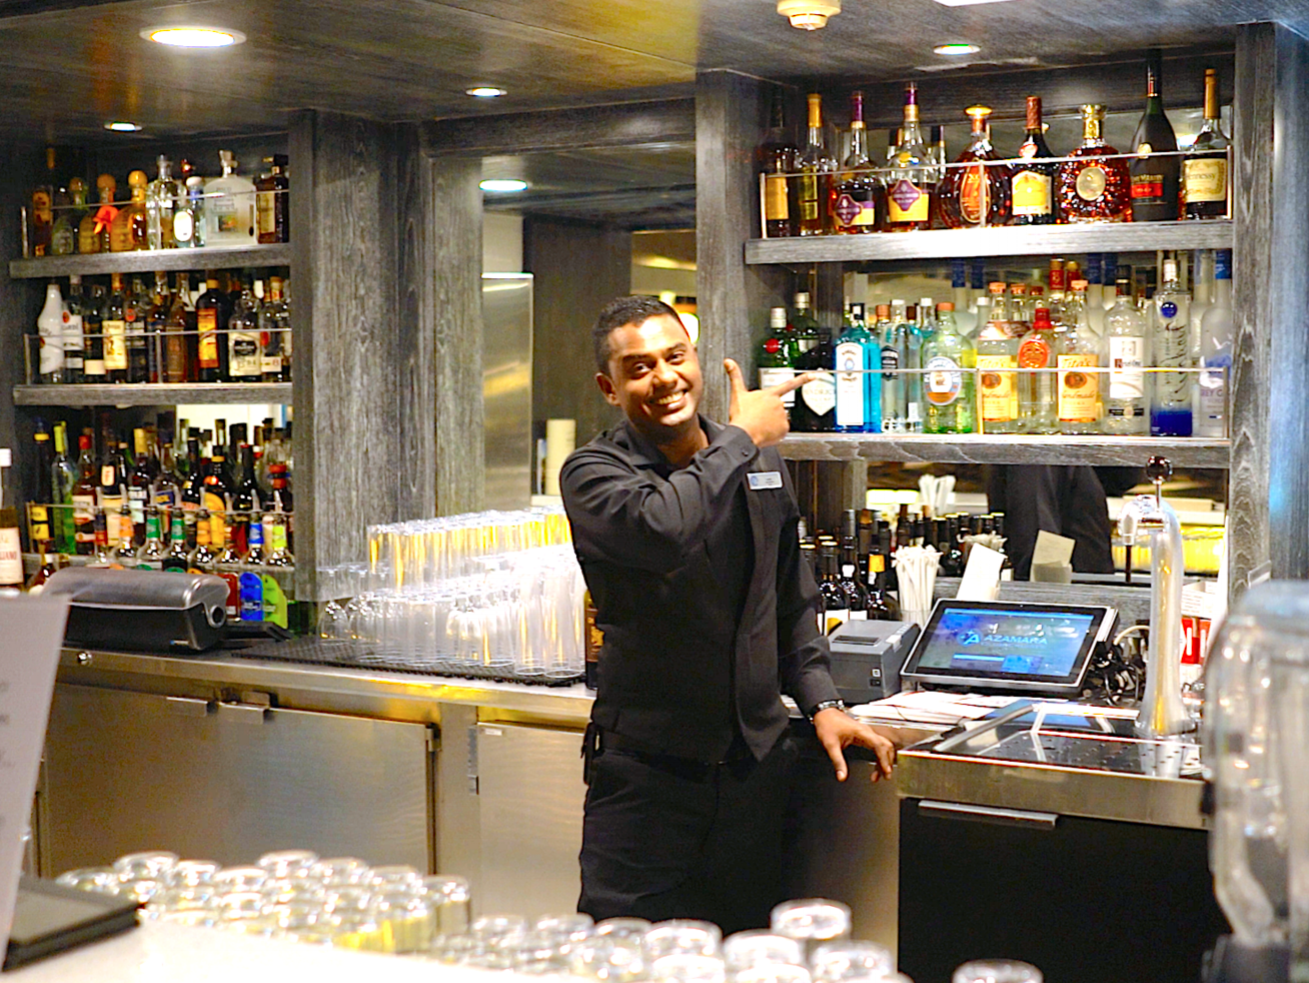 The crew on the Azamara Pursuit were some of the best we have come across on any ship we have ever travelled on.